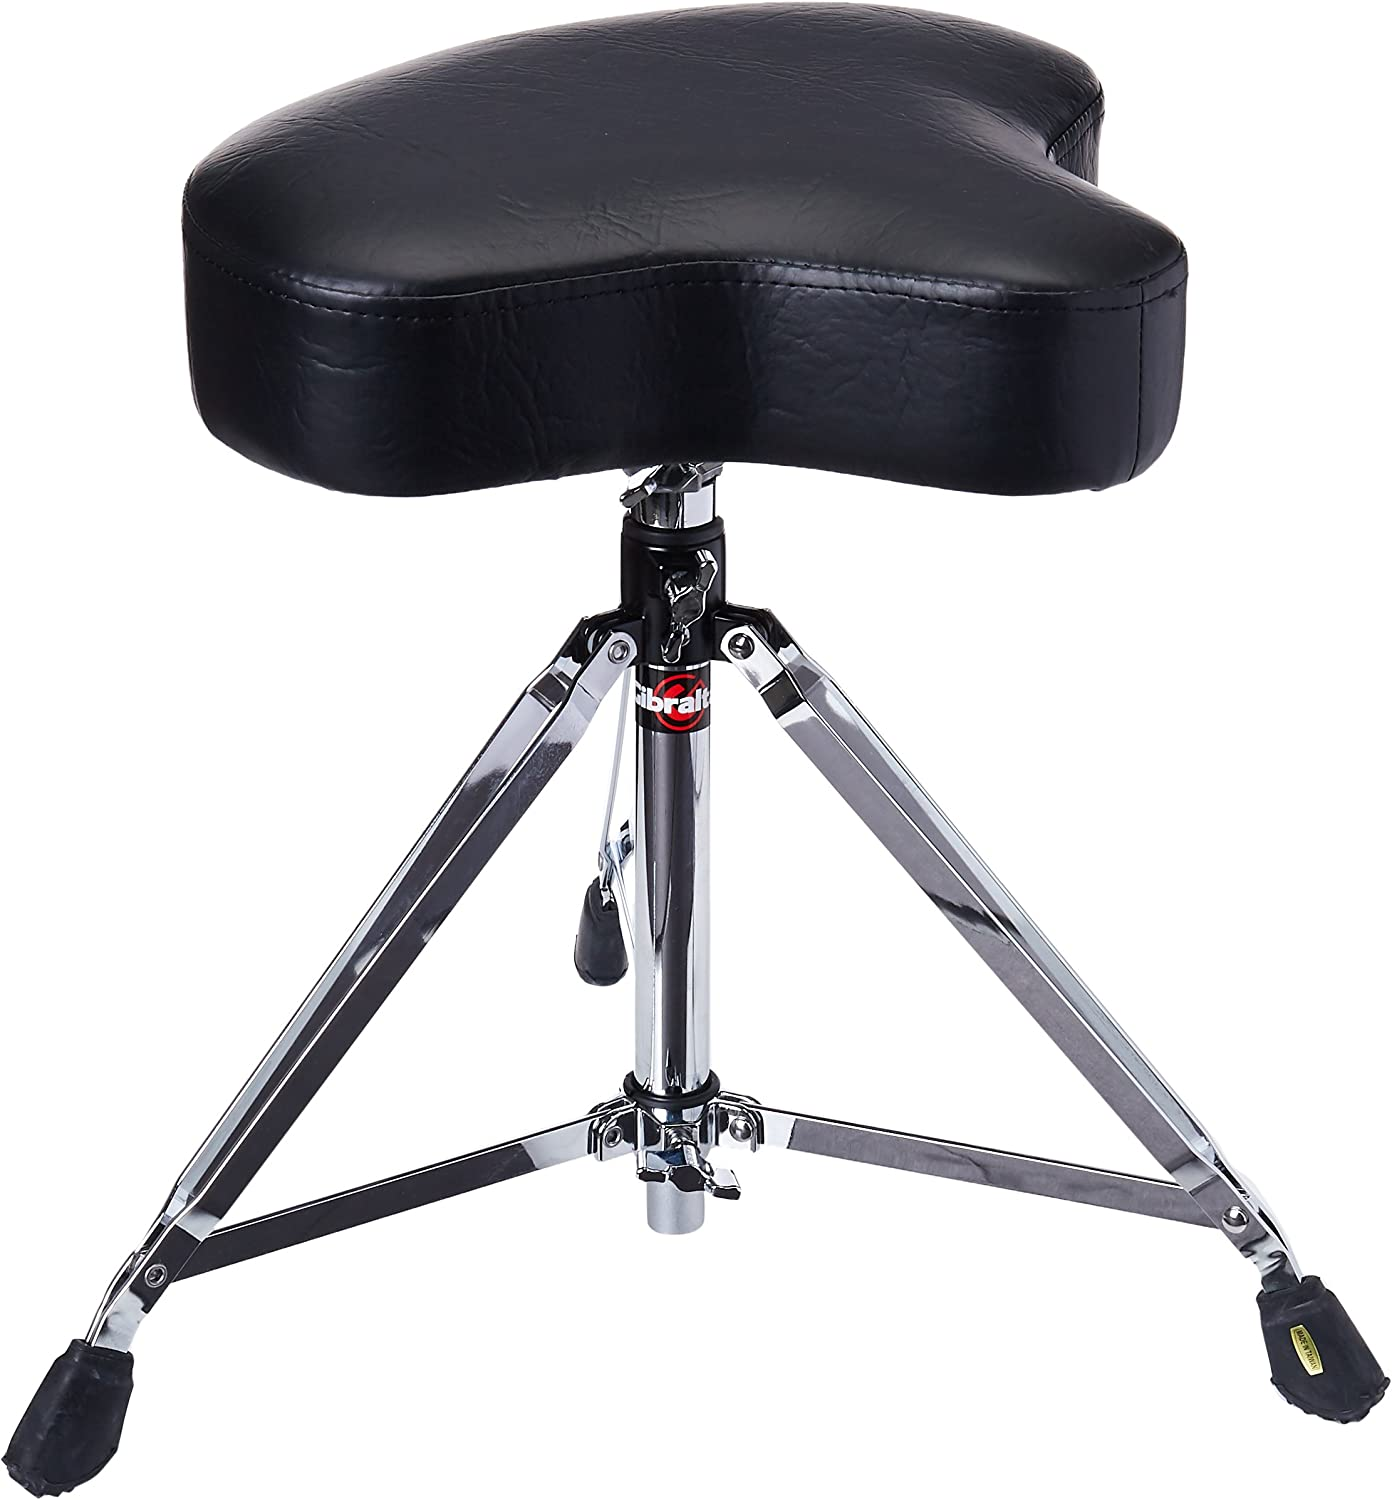 Gibraltar 6608- Heavy Drum Throne – Best for live performances